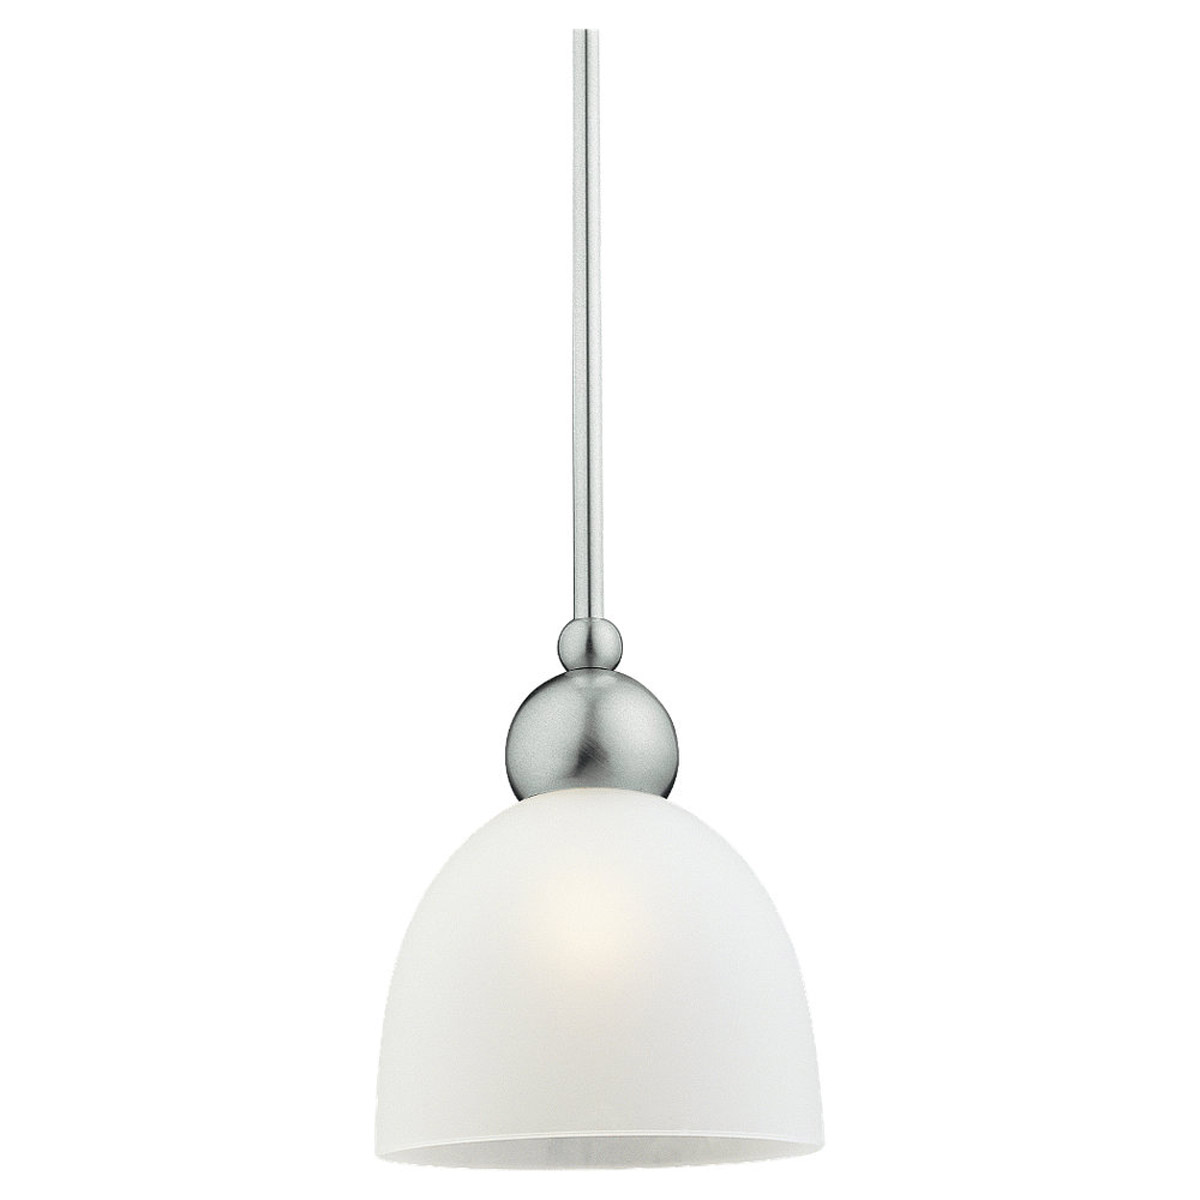 Sea Gull 61035-962 Metropolis 1 Light 7 inch Brushed Nickel Mini Pendant Ceiling Light photo